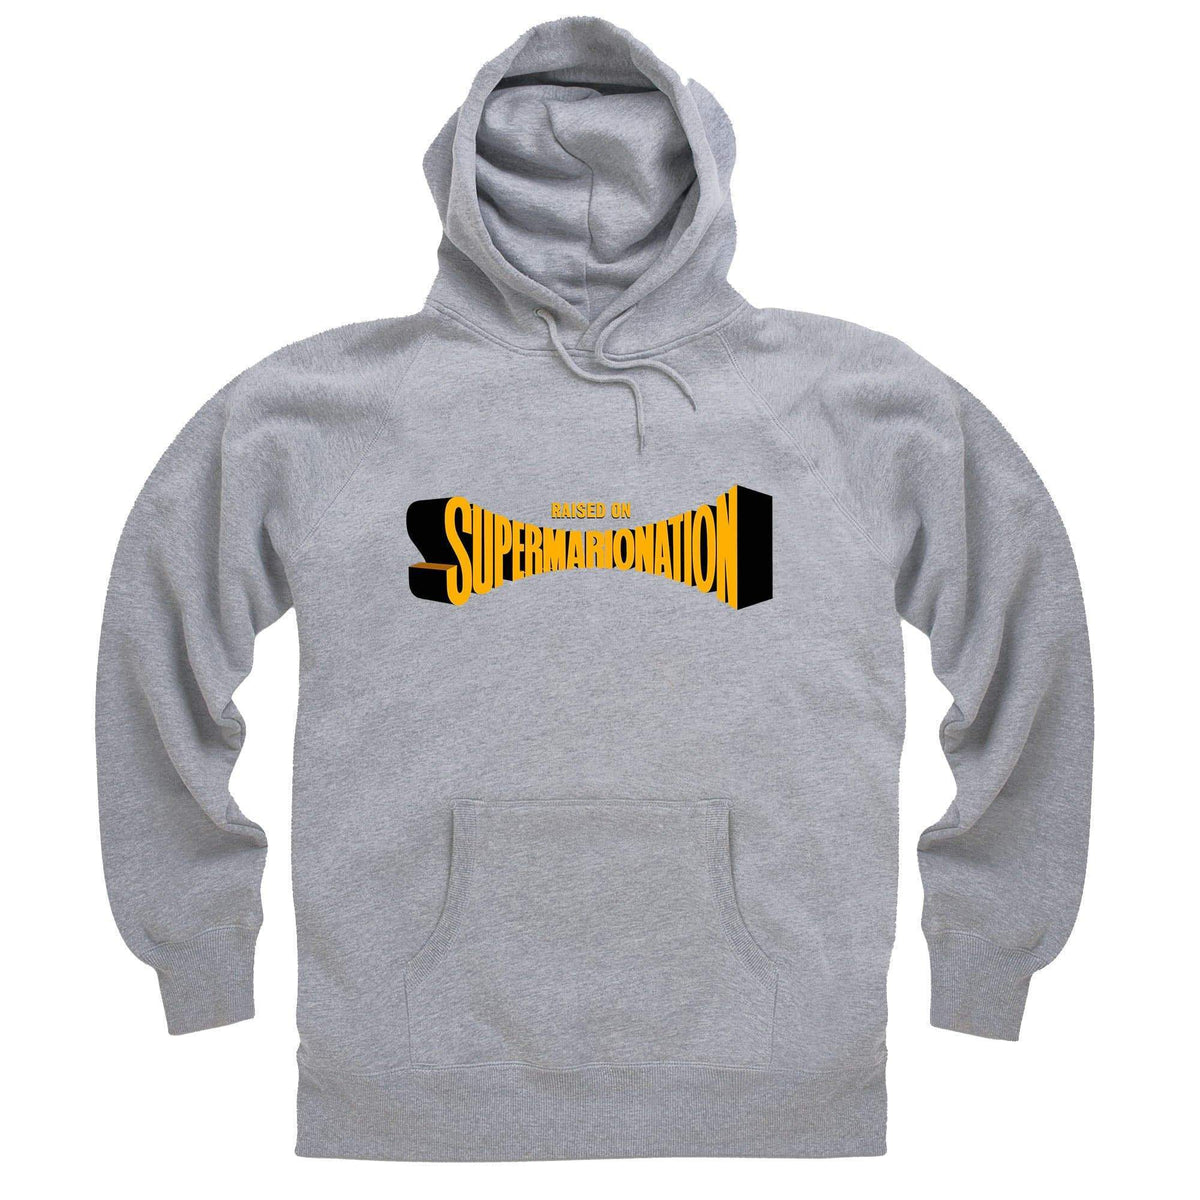 Raised on Supermarionation Hoodie [Official & Exclusive] - The Gerry Anderson Store